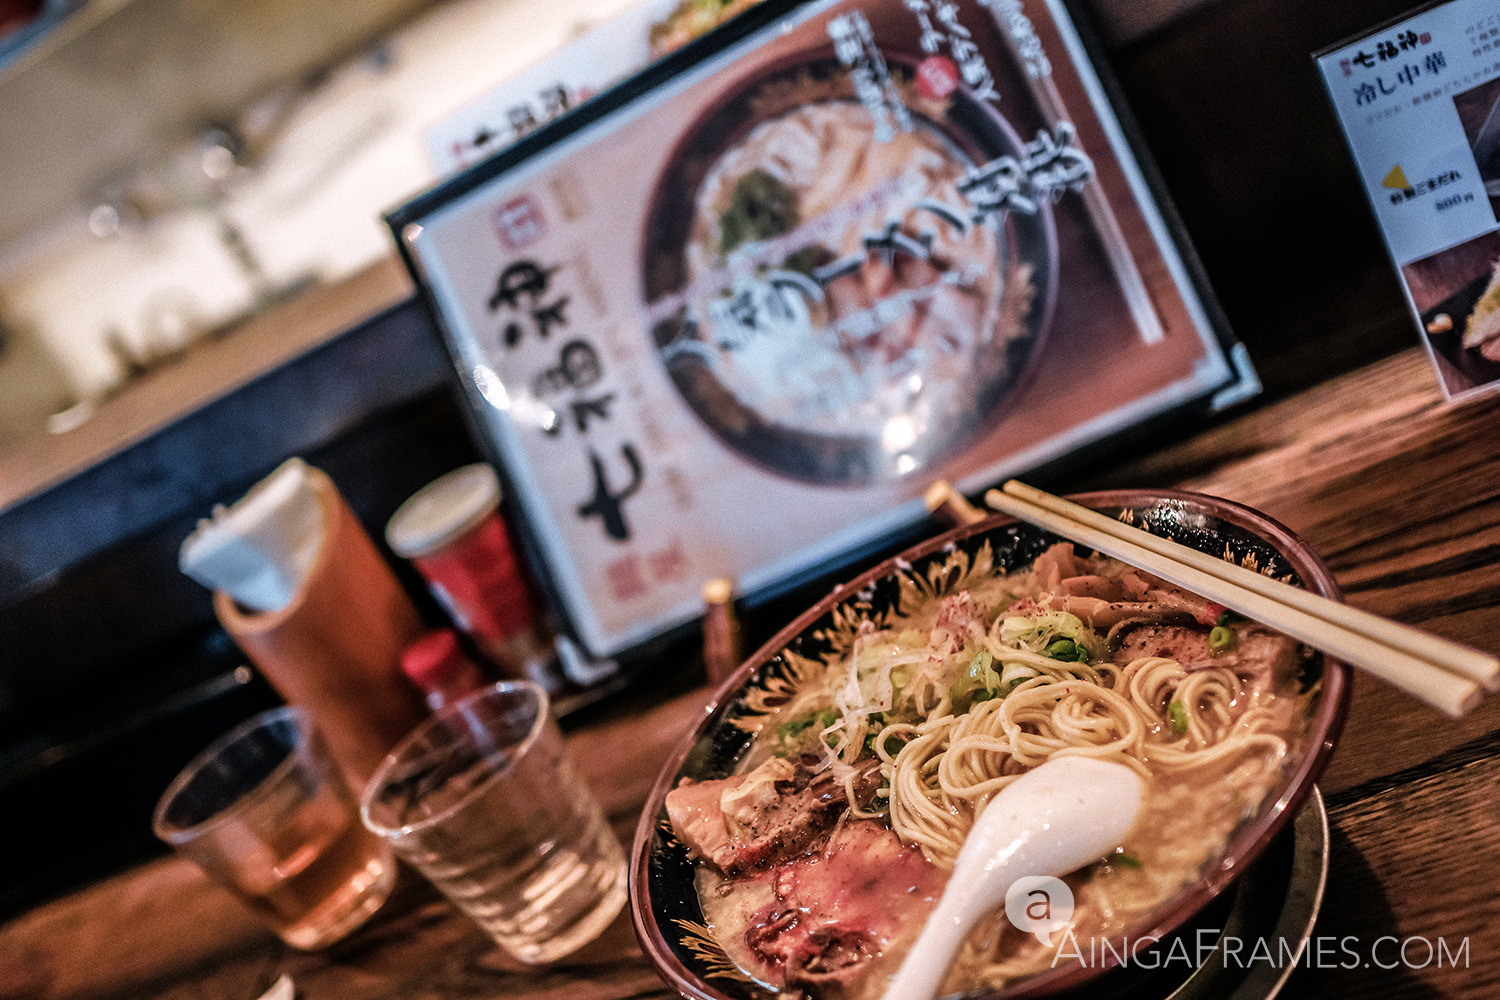 Ramen is one of Japan's favorite noodle dish. My favorite has to be Tonkotsu — served in a creamy, pork based stock.